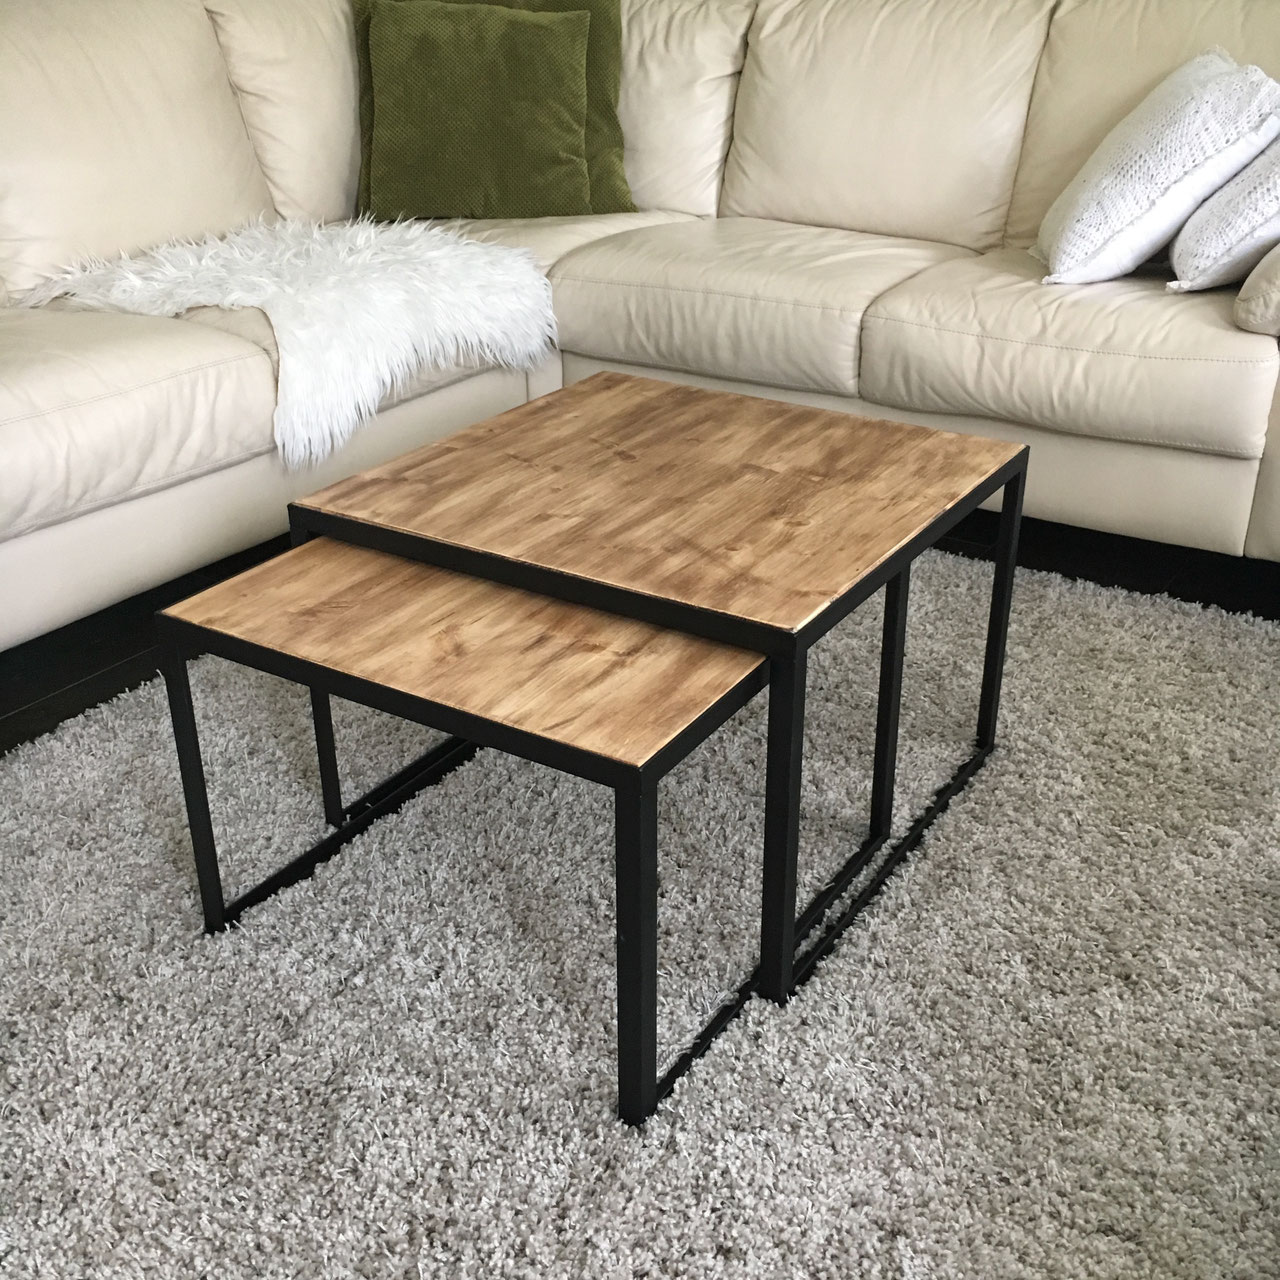 Salontafel Rond Staal Hout